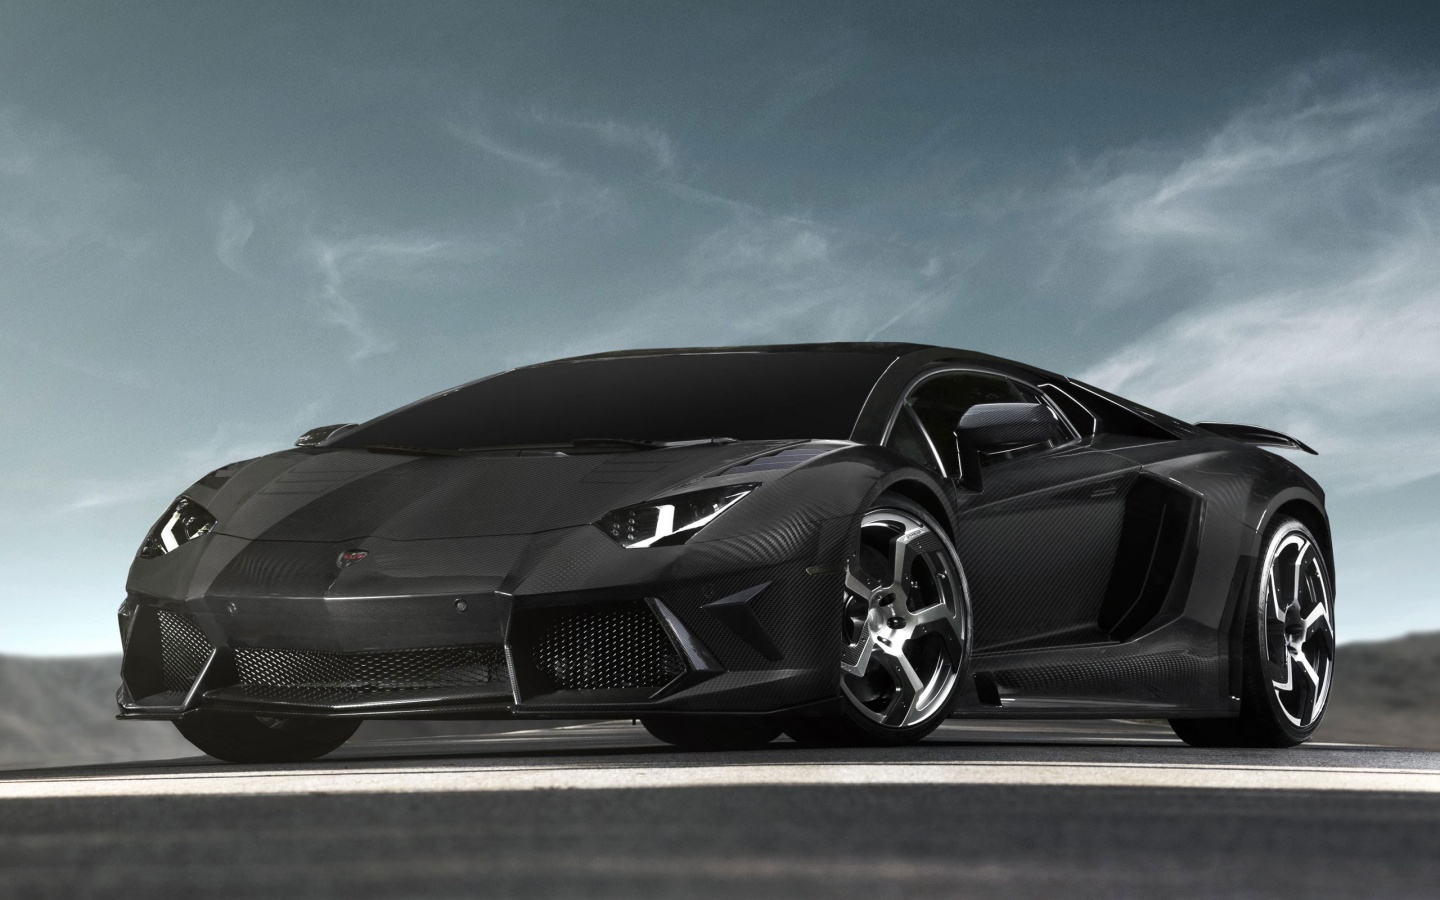 Black Lamborghini Aventador Widescreen HD Wallpaper 1440x900